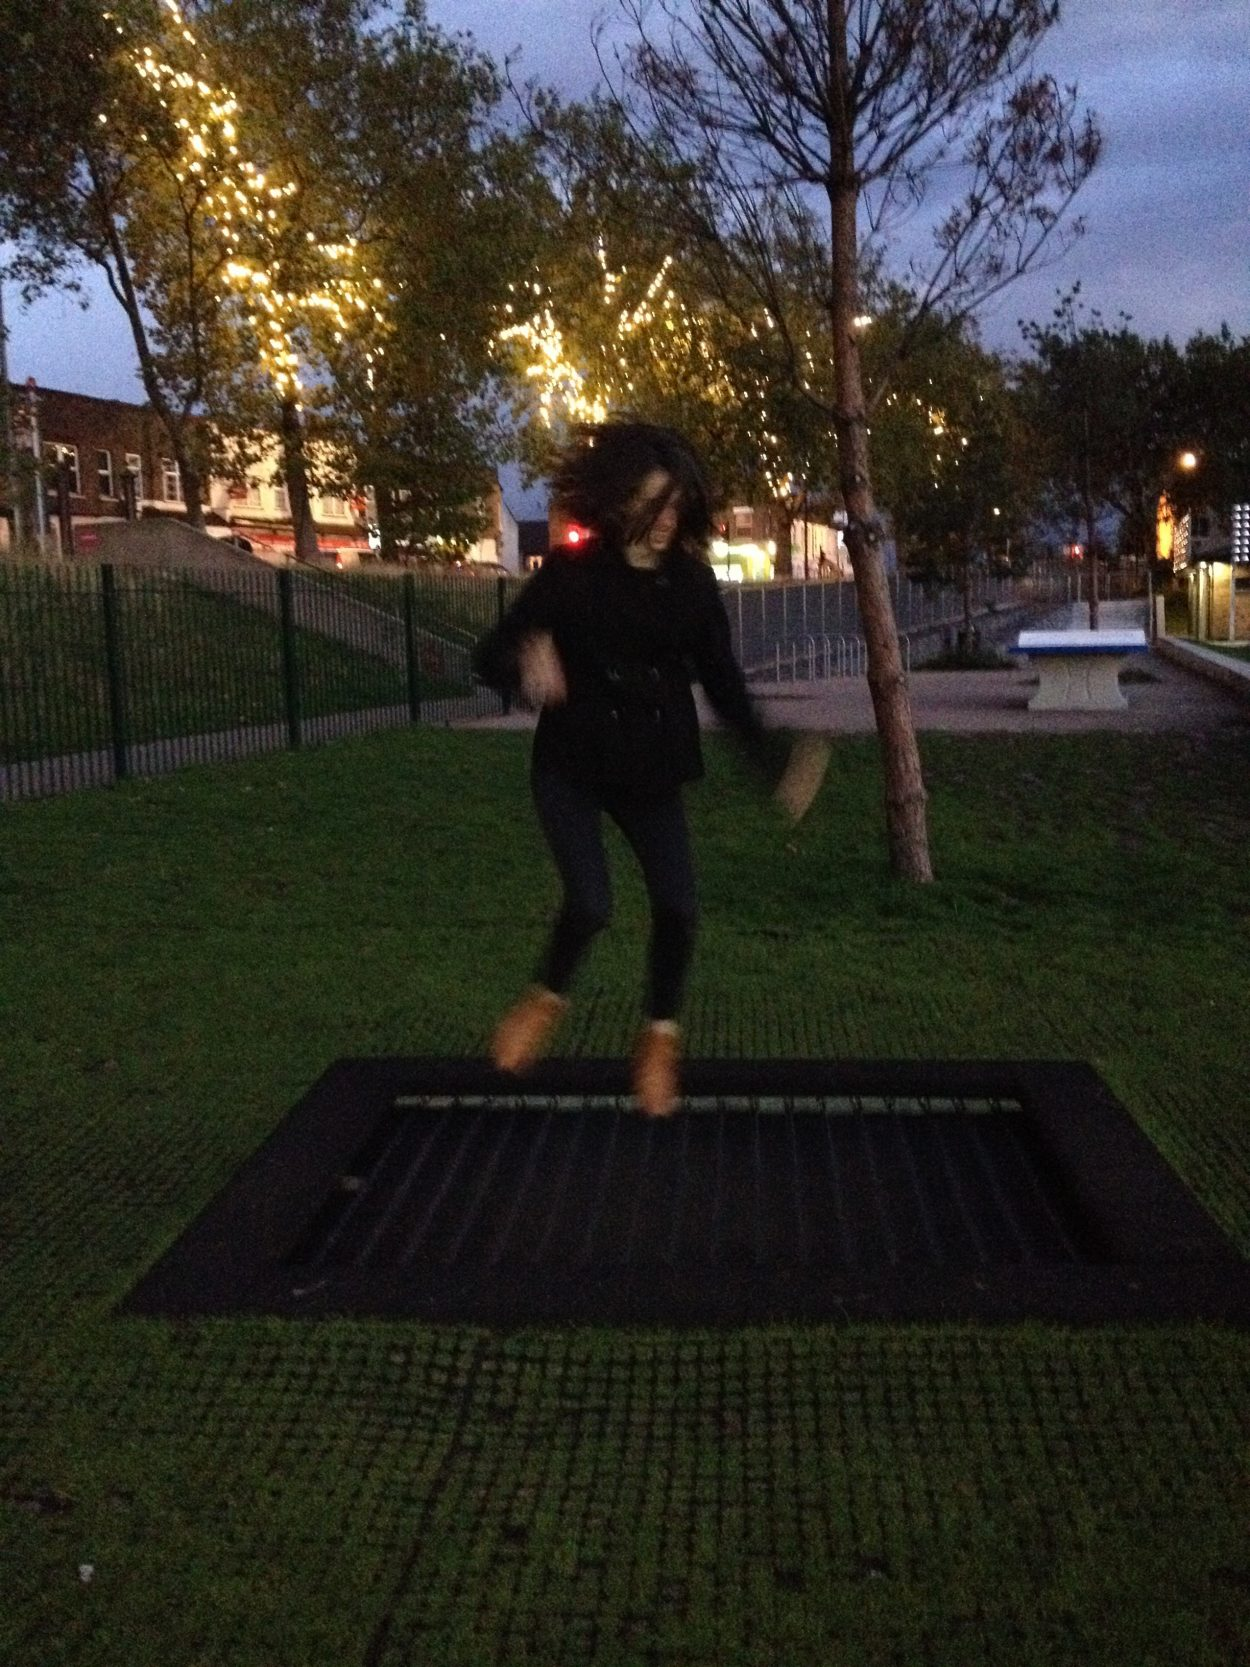 Piper Haywood jumping on trampoline in Drapers Field, London